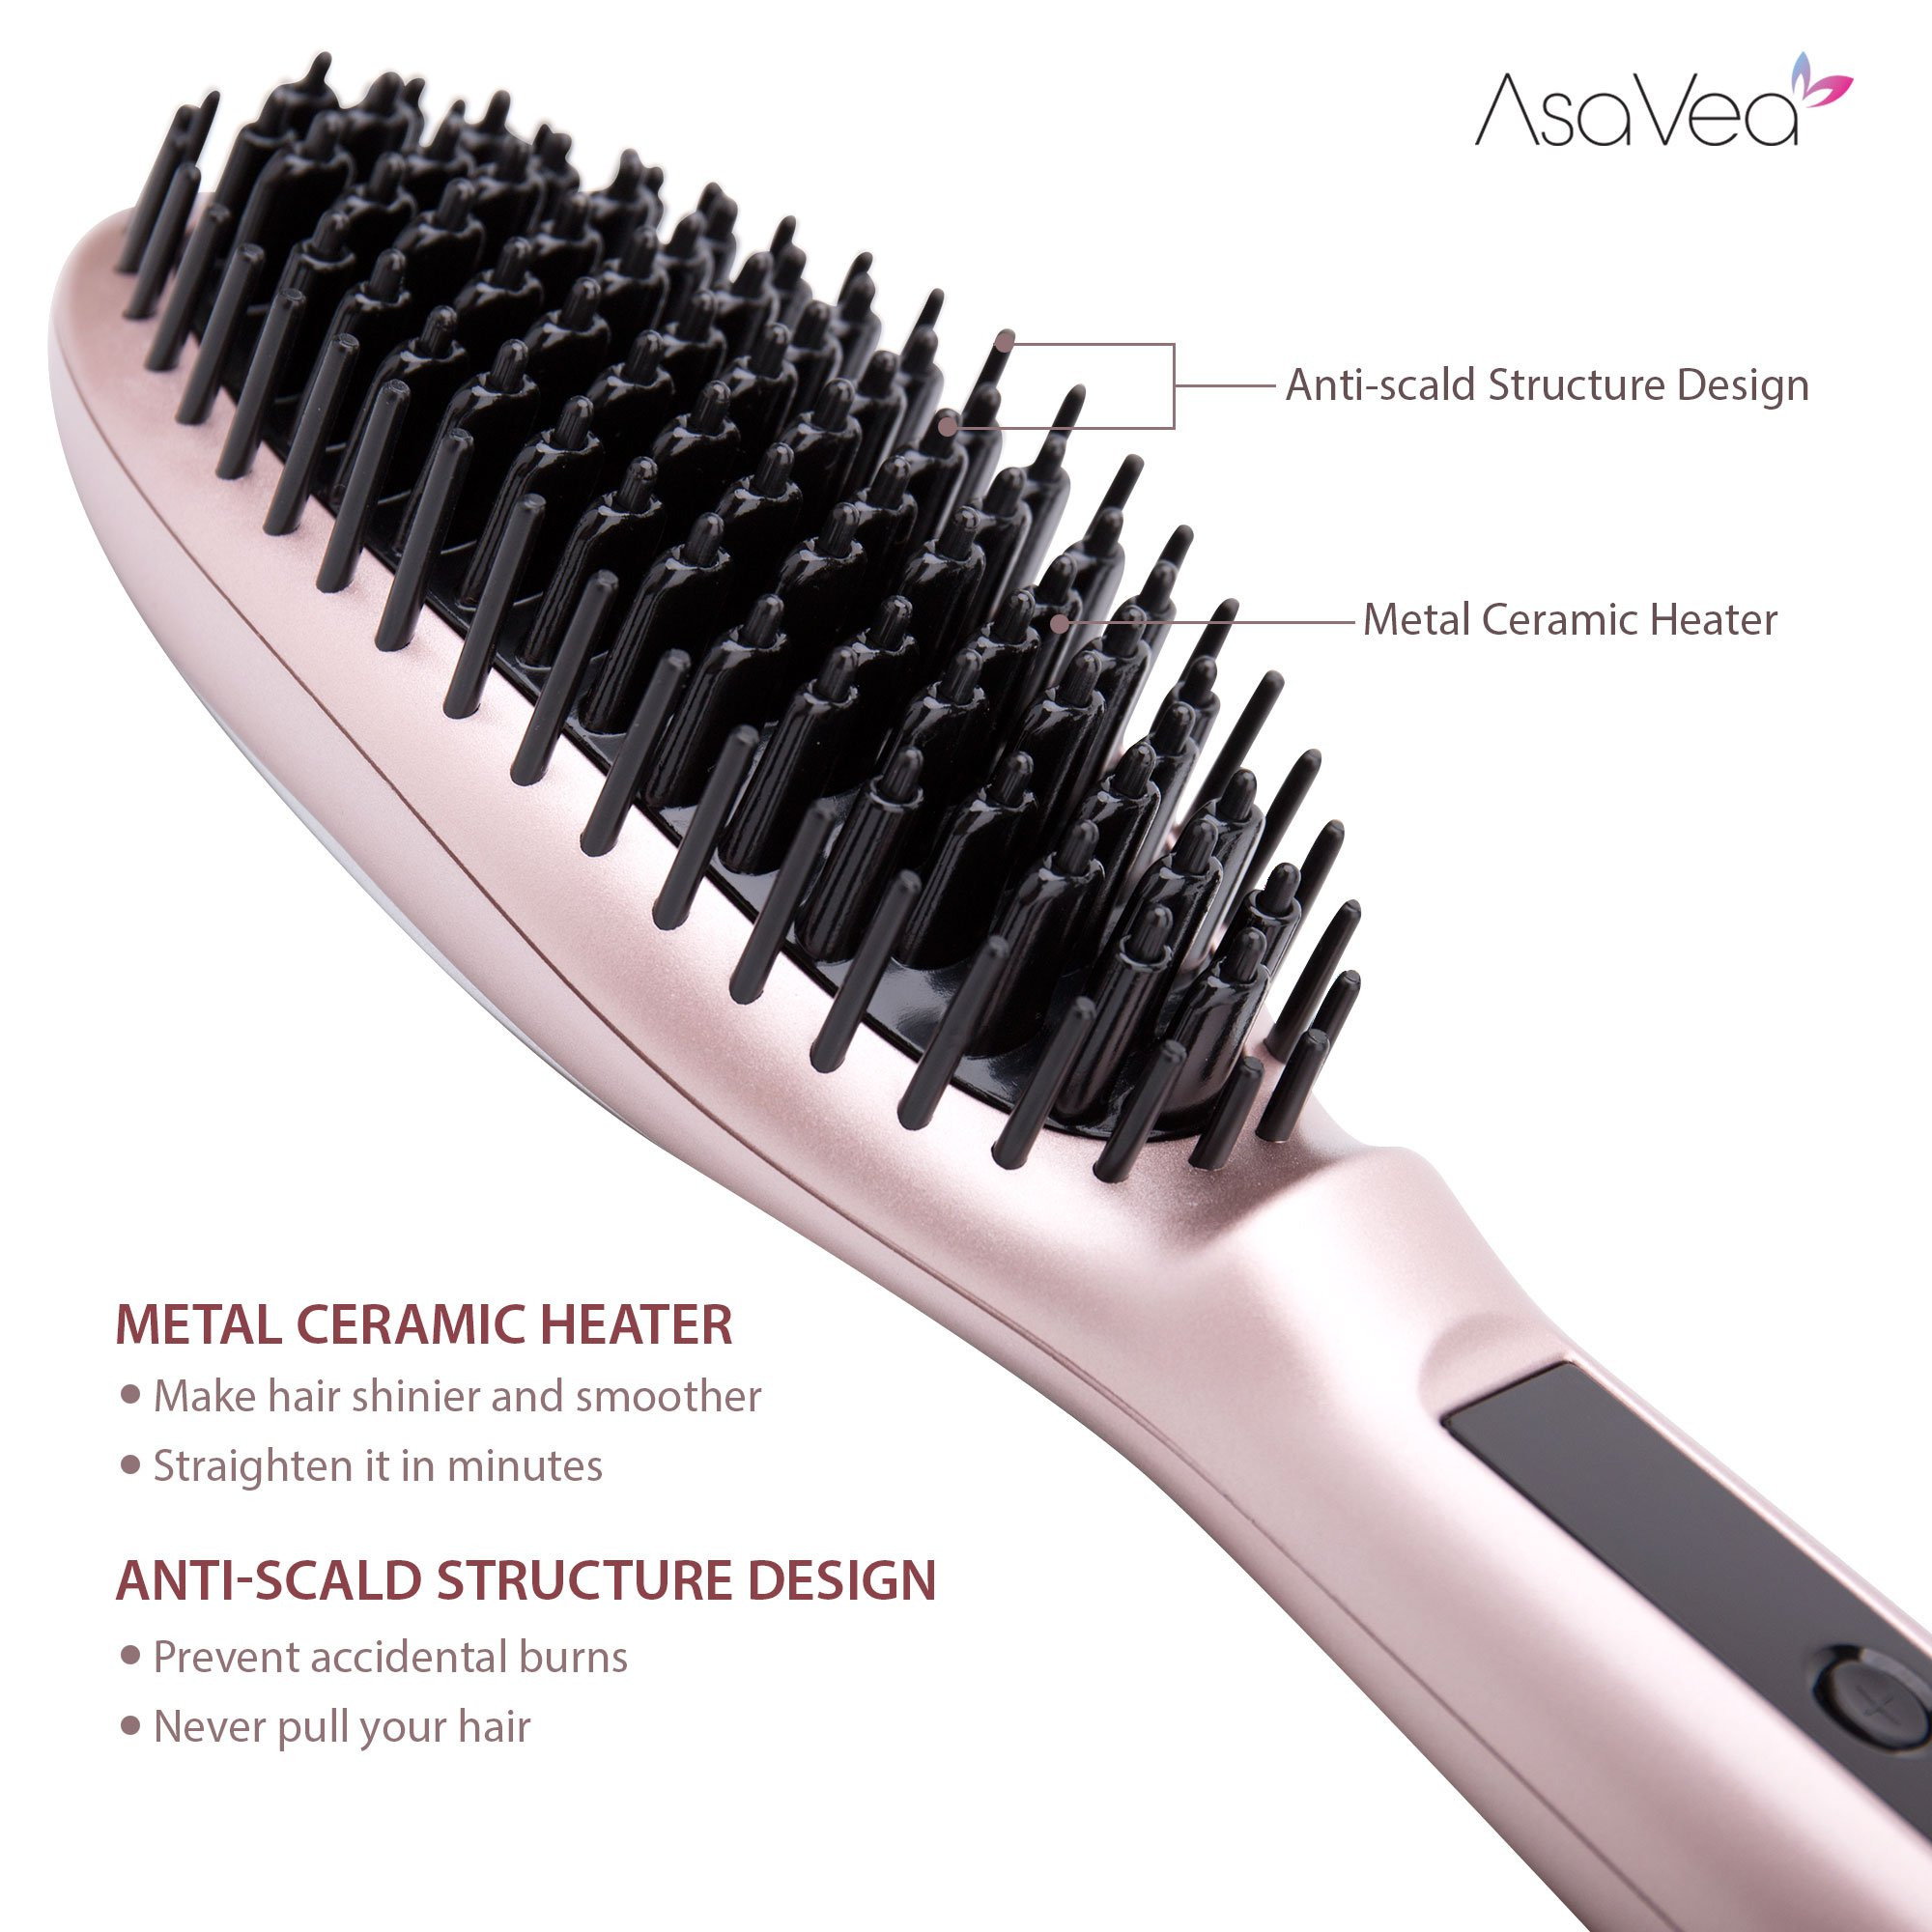 AsaVea Hair Straightener Brush 3.0: MCH Heating Technology and Auto Temperature Lock, Anti-Scald Design - The Best Gift Choice (Rose Gold) by AsaVea (Image #5)